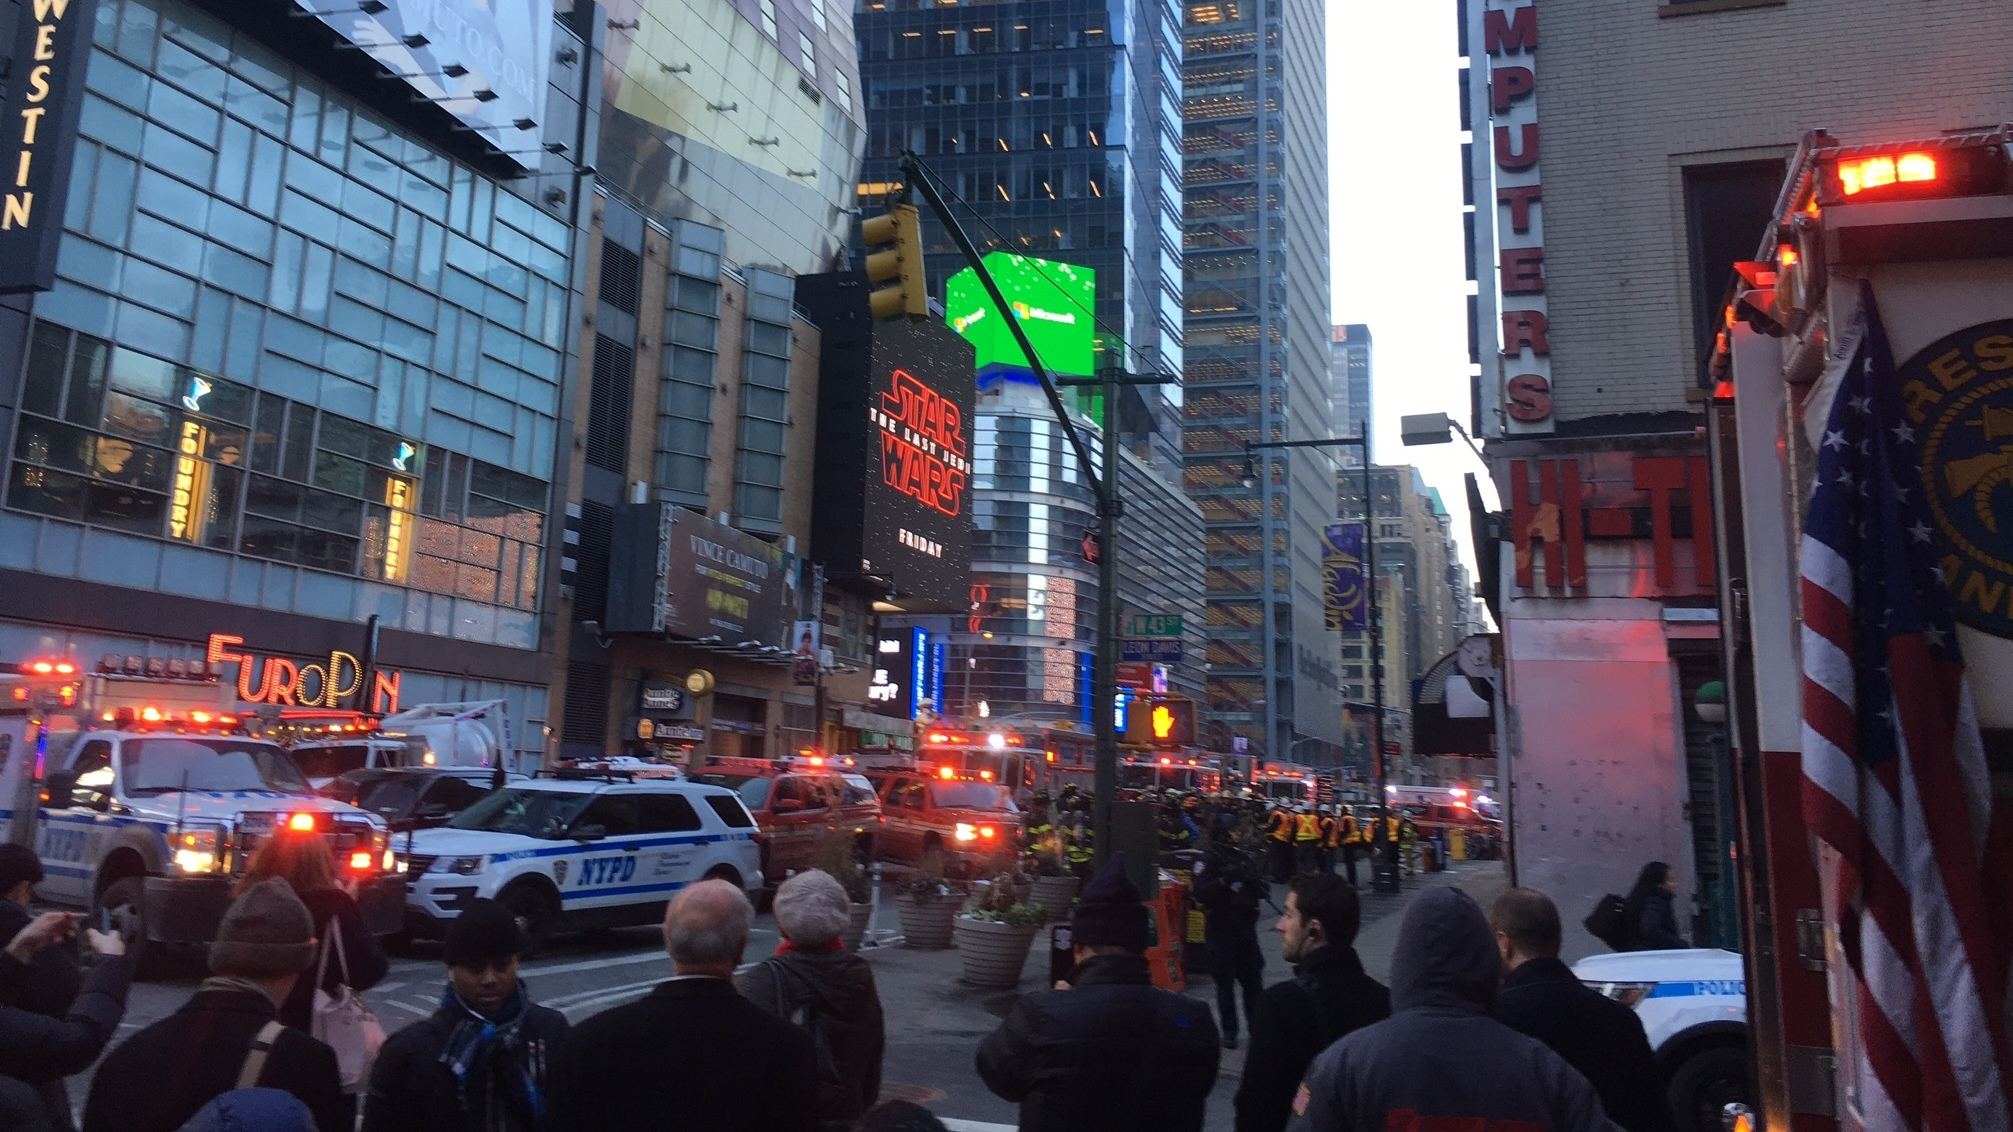 'Explosion' at Manhattan bus terminal